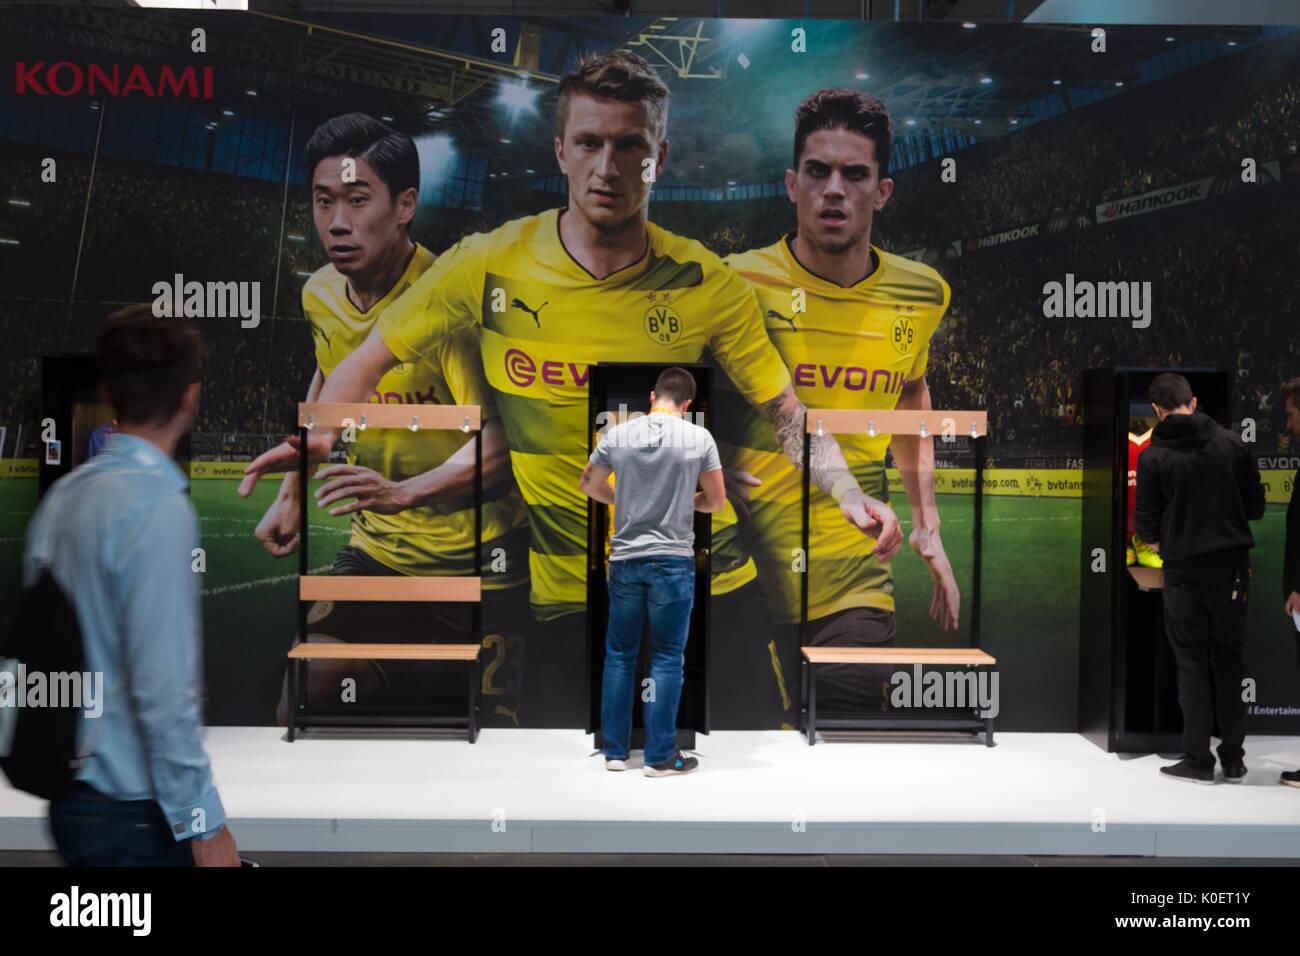 Cologne, Germany. 22nd Aug, 2017. Germany, Cologne, August 22, 2017, Gamescom: Booth of Borussia Dortmund BVB Edition of Konami. Credit: Juergen Schwarz/Alamy Live News - Stock Image